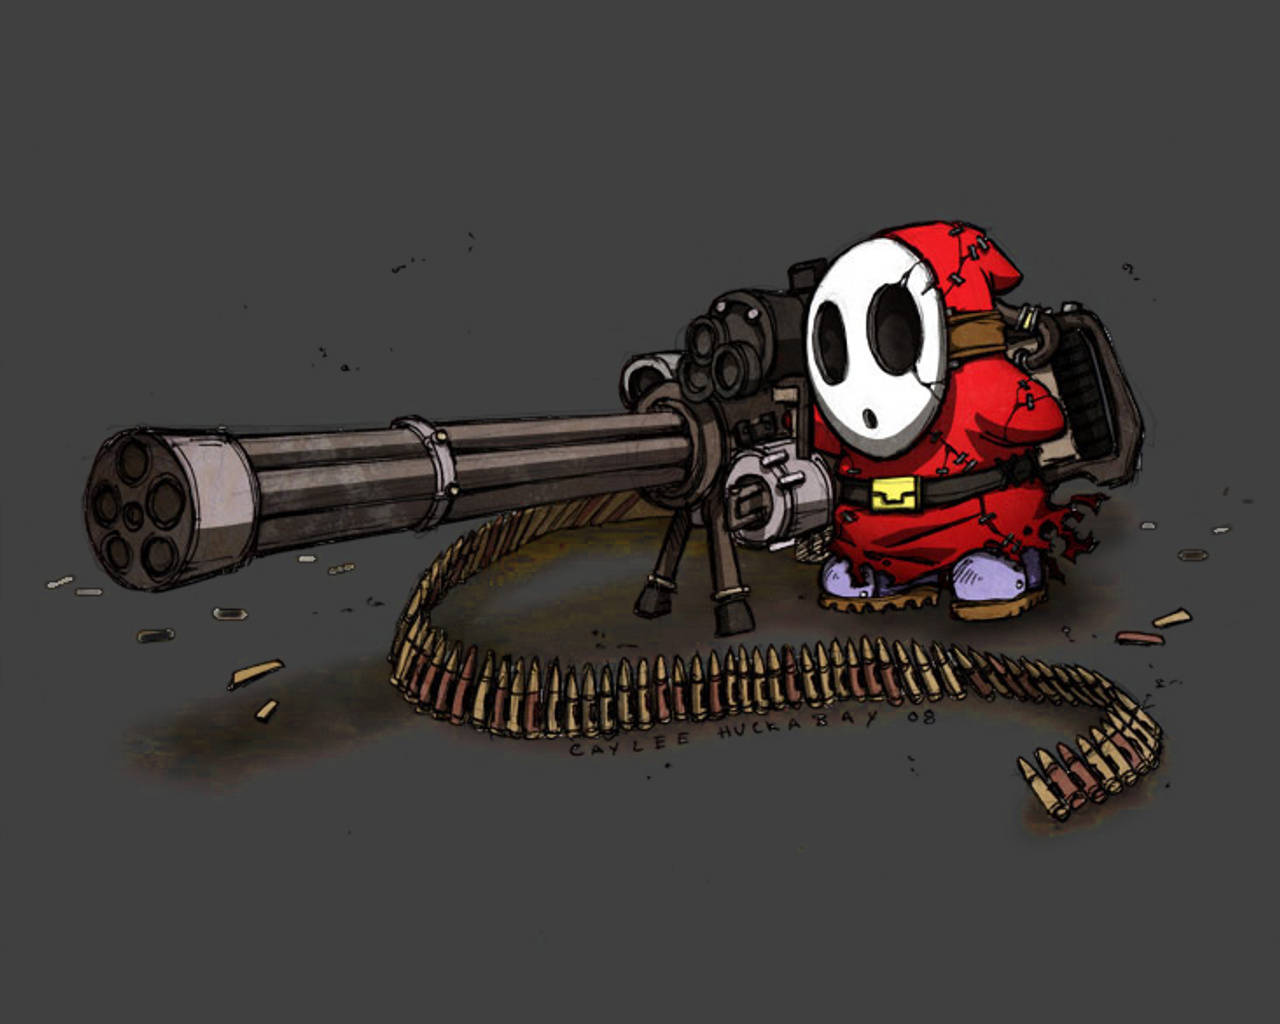 http://4.bp.blogspot.com/-imfJyra0cXg/T8p5PVHT_NI/AAAAAAAAA5Q/P1yl5bnX7gI/s1600/shy+guy+guys+mario+machine+gun+red+wallpaper+background.jpg